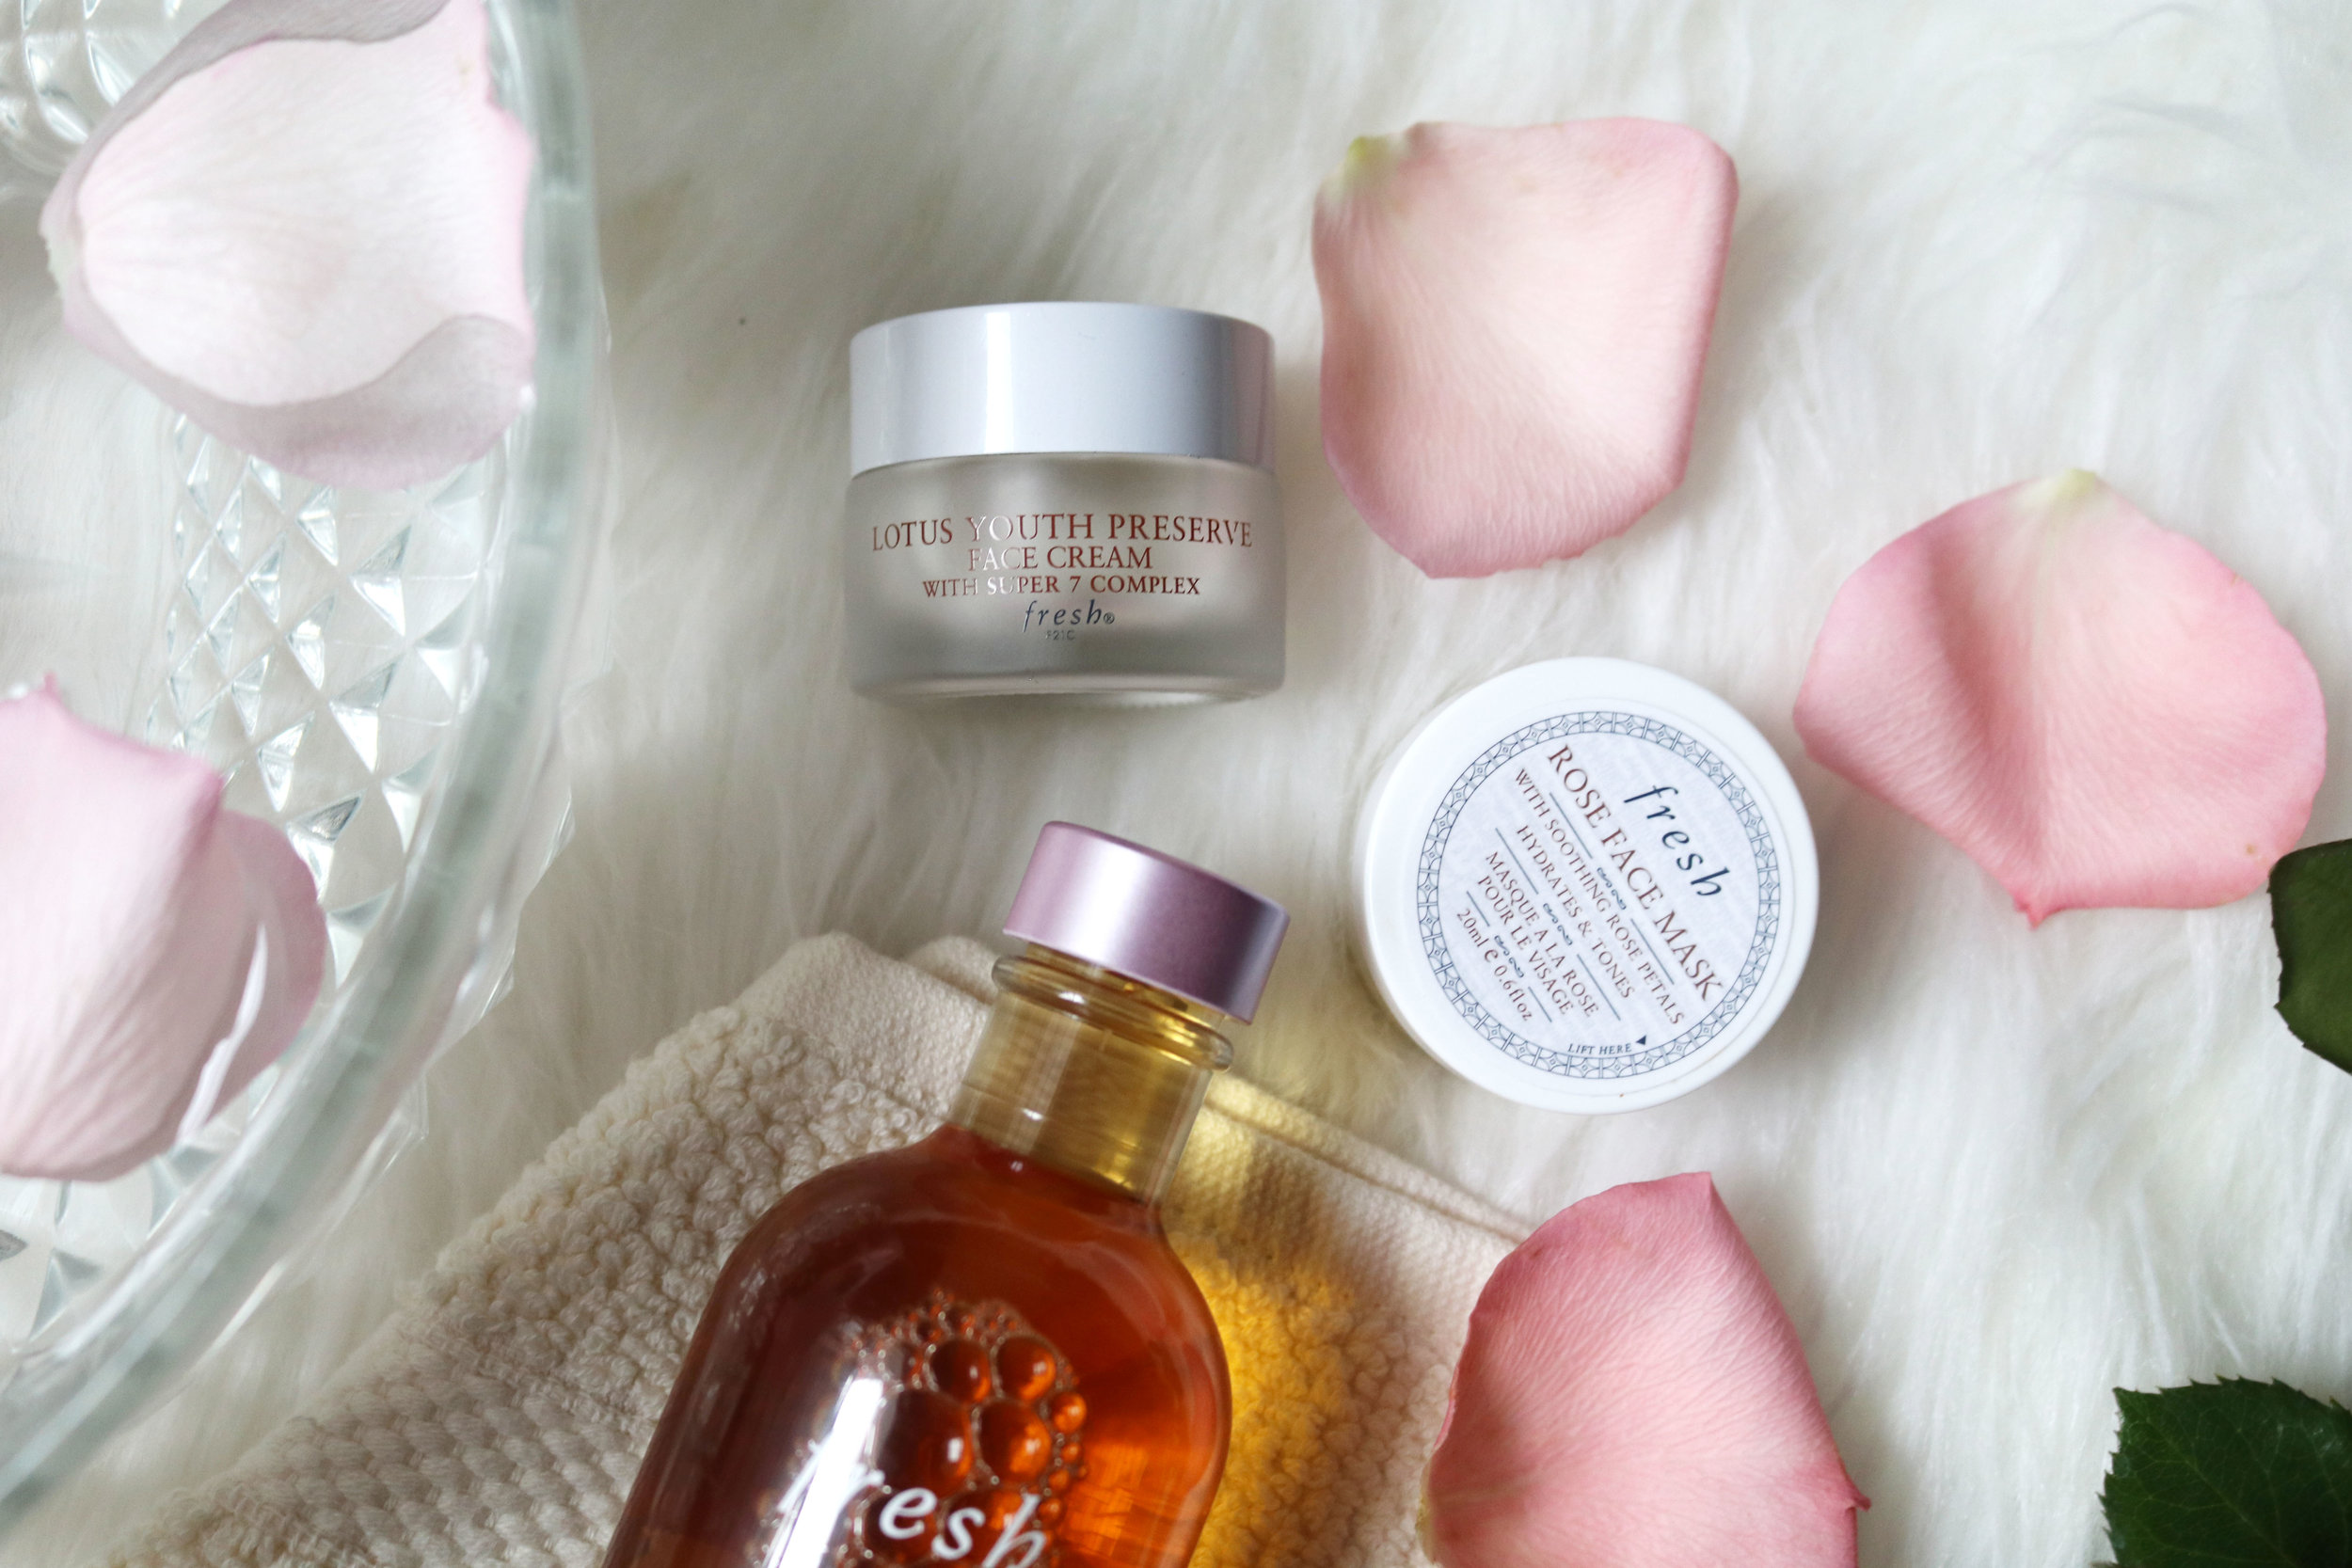 Fresh Rose Face Mask (sample) and Lotus Youth Preserve Face Cream with Super 7 Complex